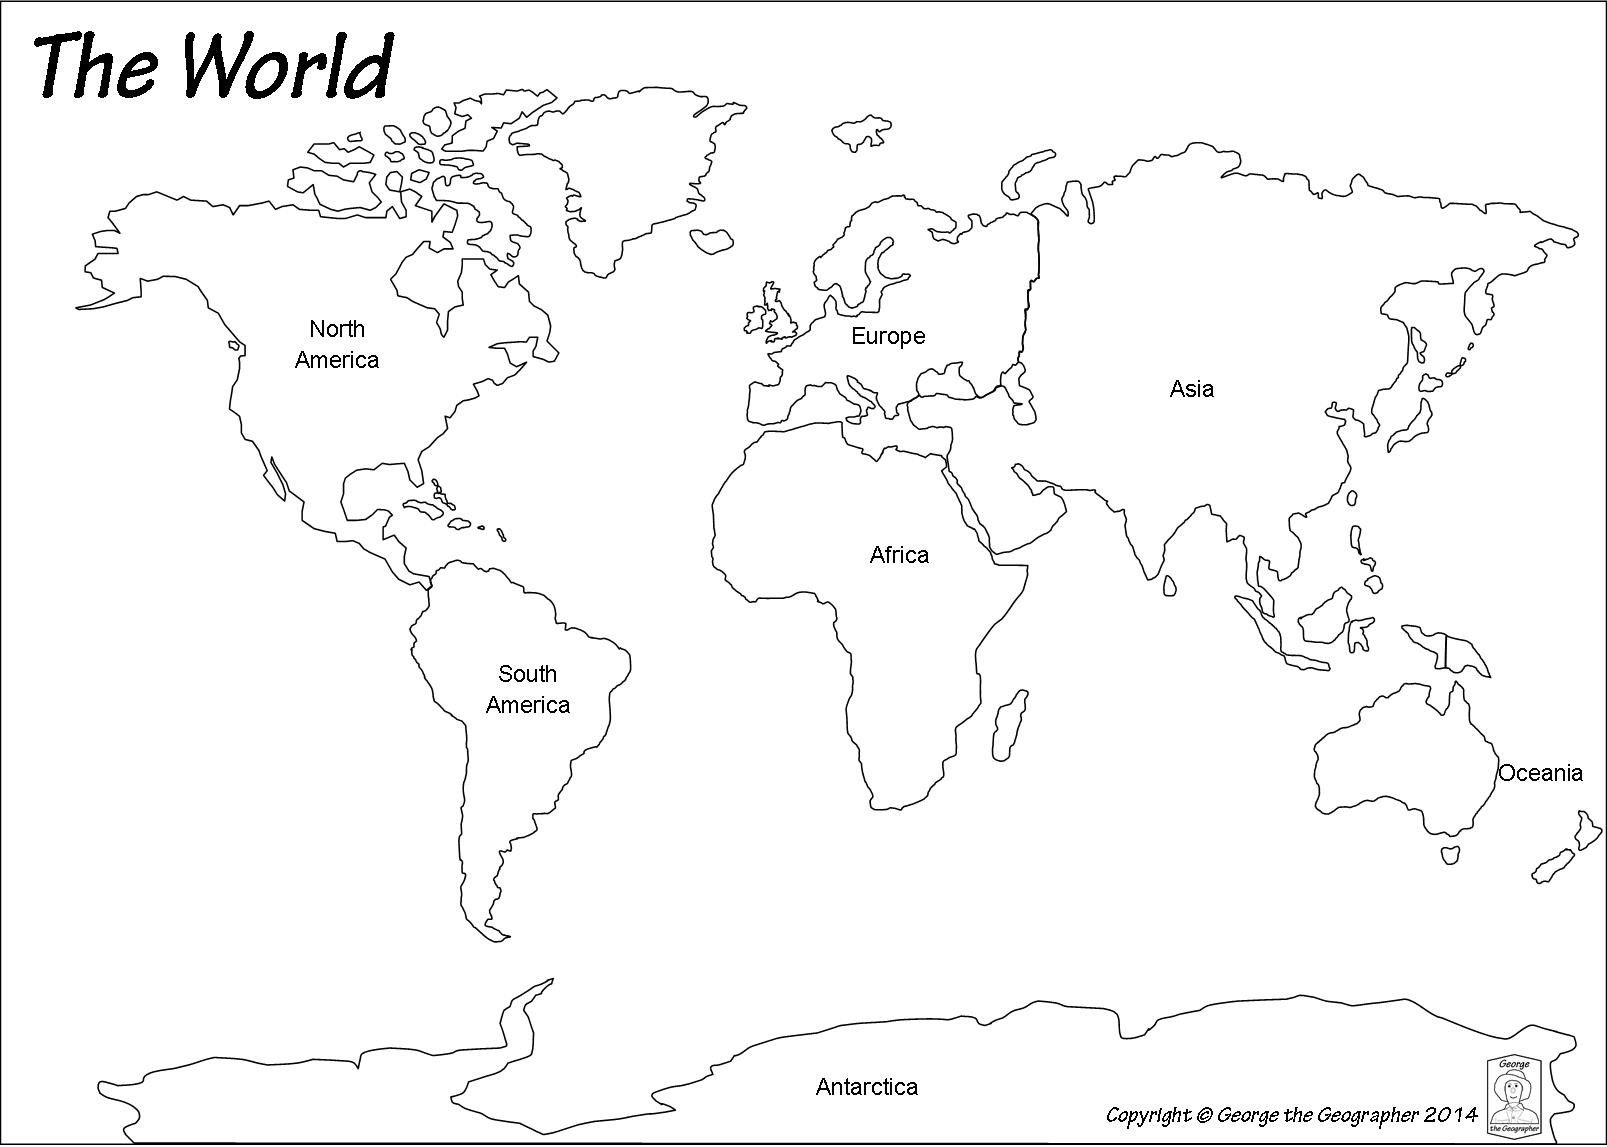 continents outline map printable Thorough India Map Outline For Print World Map Puzzle Pdf Asia continents outline map printable